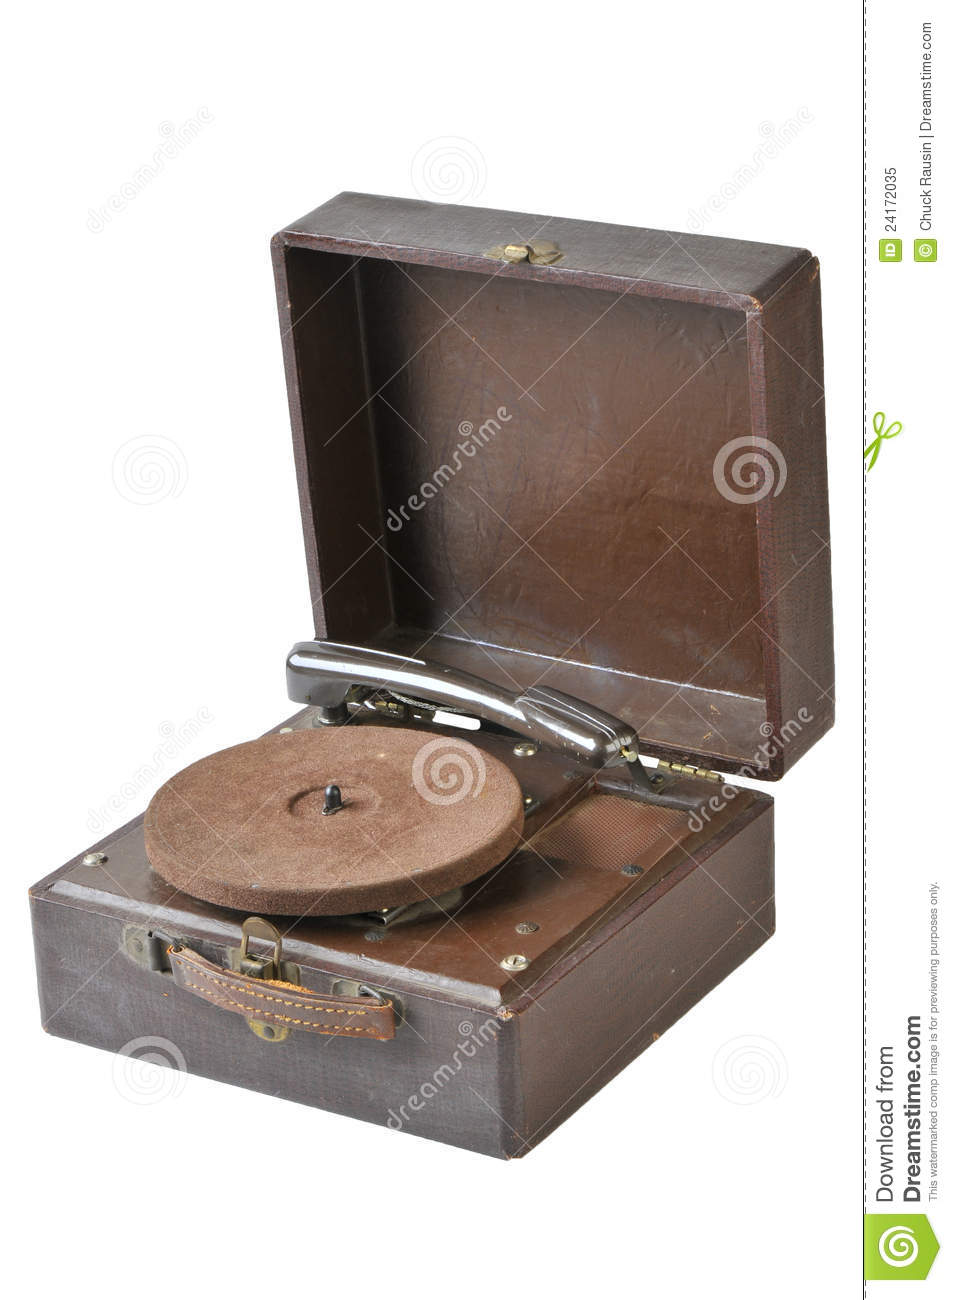 Vintage 45 Record Player Royalty Free Stock Photo Image